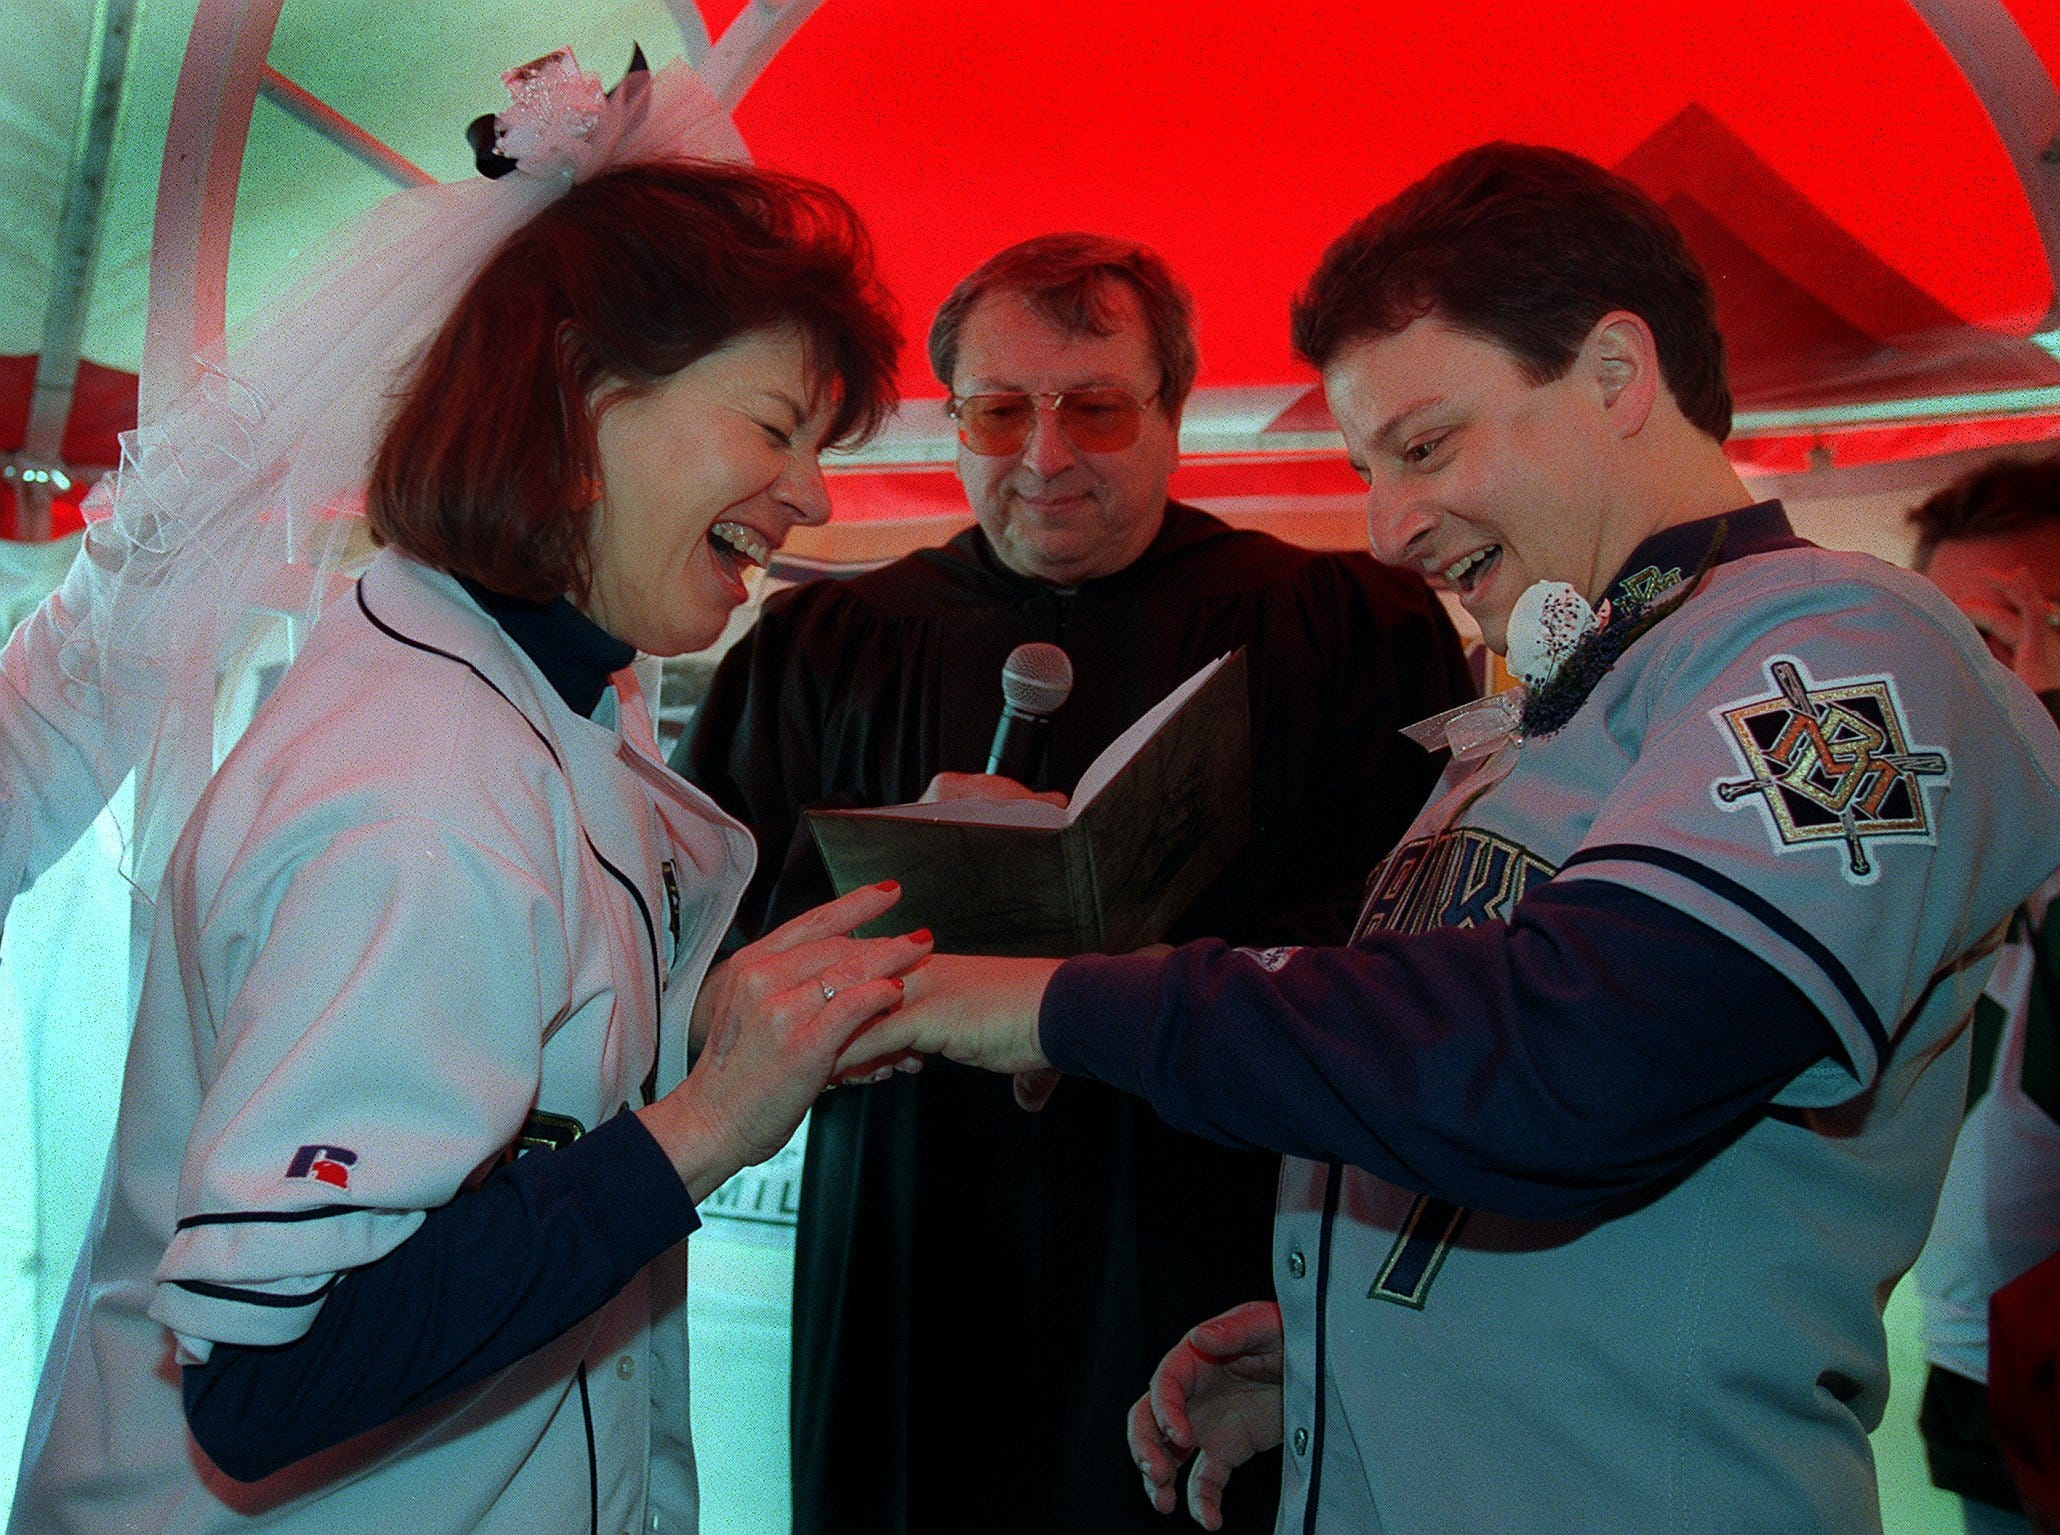 Brewers fans Claire Stann and Dean Wonser are joined holy matrimony by Judge Michael Hurt before the Milwaukee Brewers' home opener on April 16, 1999, at County Stadium. The ceremony took place in the new east parking lot, part of the preparations for Miller Park. In the game, which was supposed to be the Brewers' final opening day at County Stadium, Milwaukee lost to the Chicago Cubs, 9-4. (A deadly crane collapse later that summer delayed completion of Miller Park until the 2001 season.)